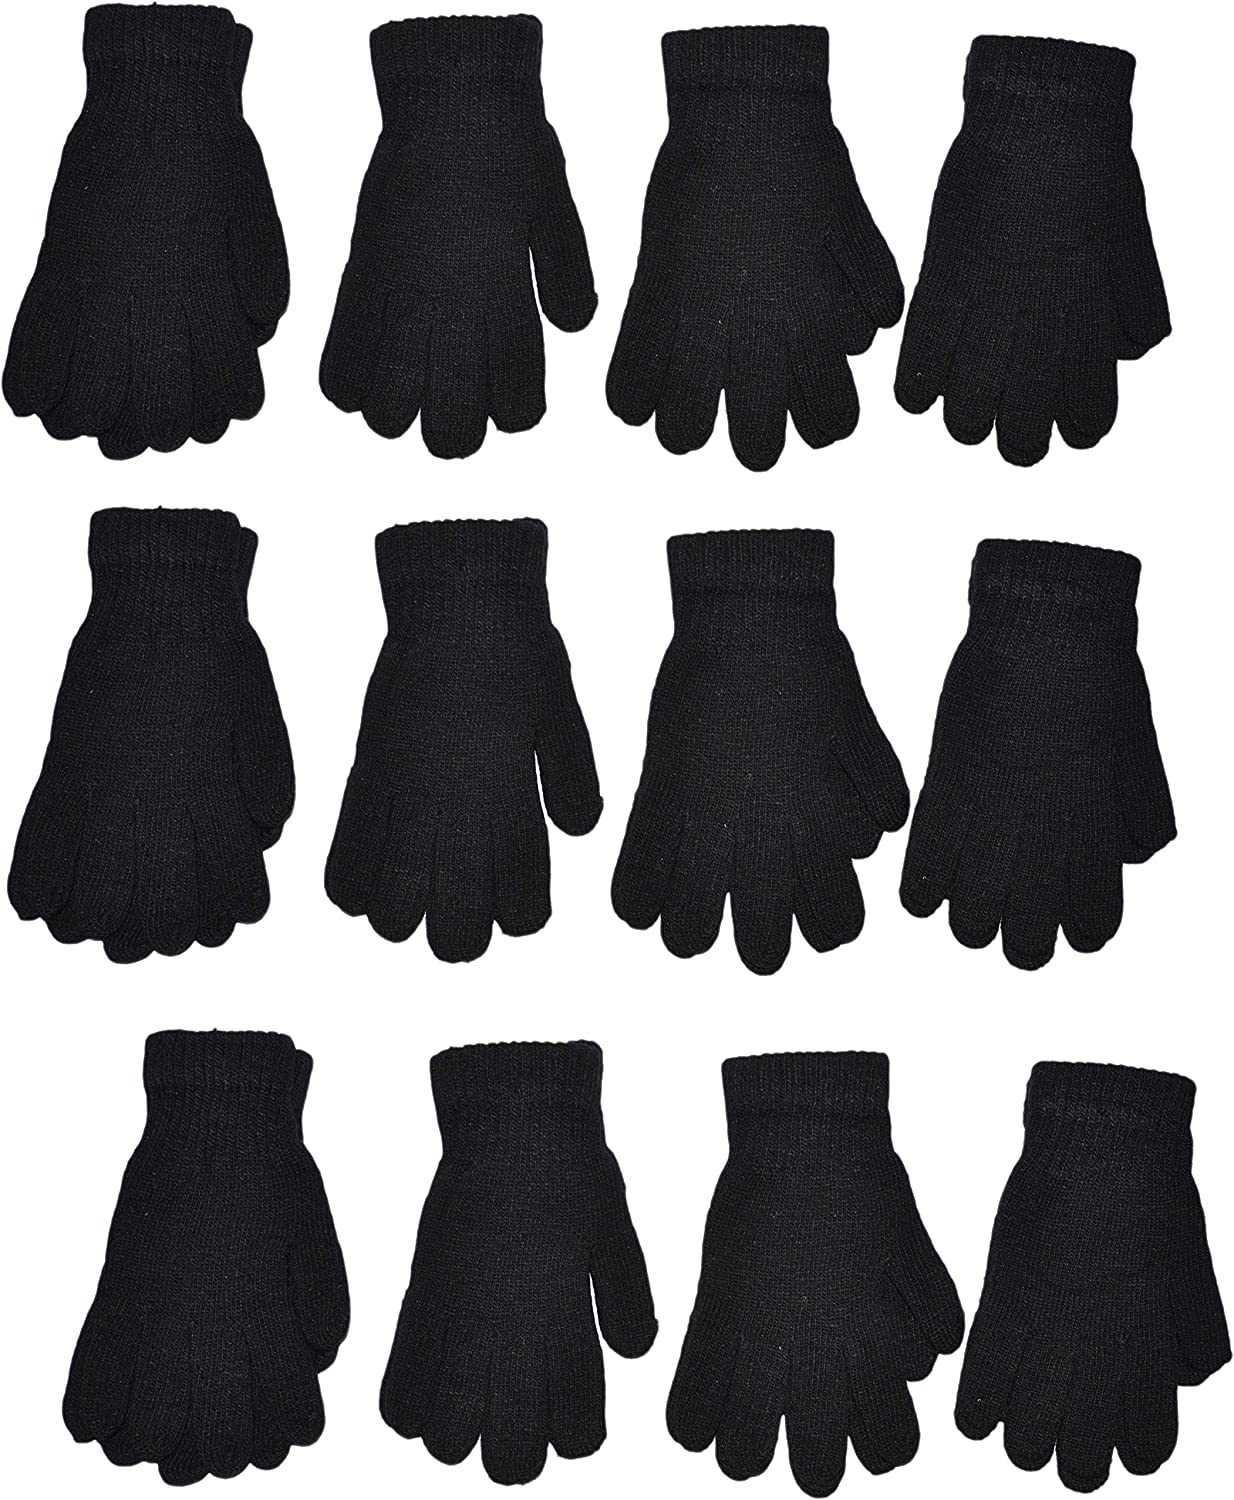 OPT Brand. Chenille Knit Gloves Magic Soft Winter Gloves Unisex 12 Pairs Wholesale